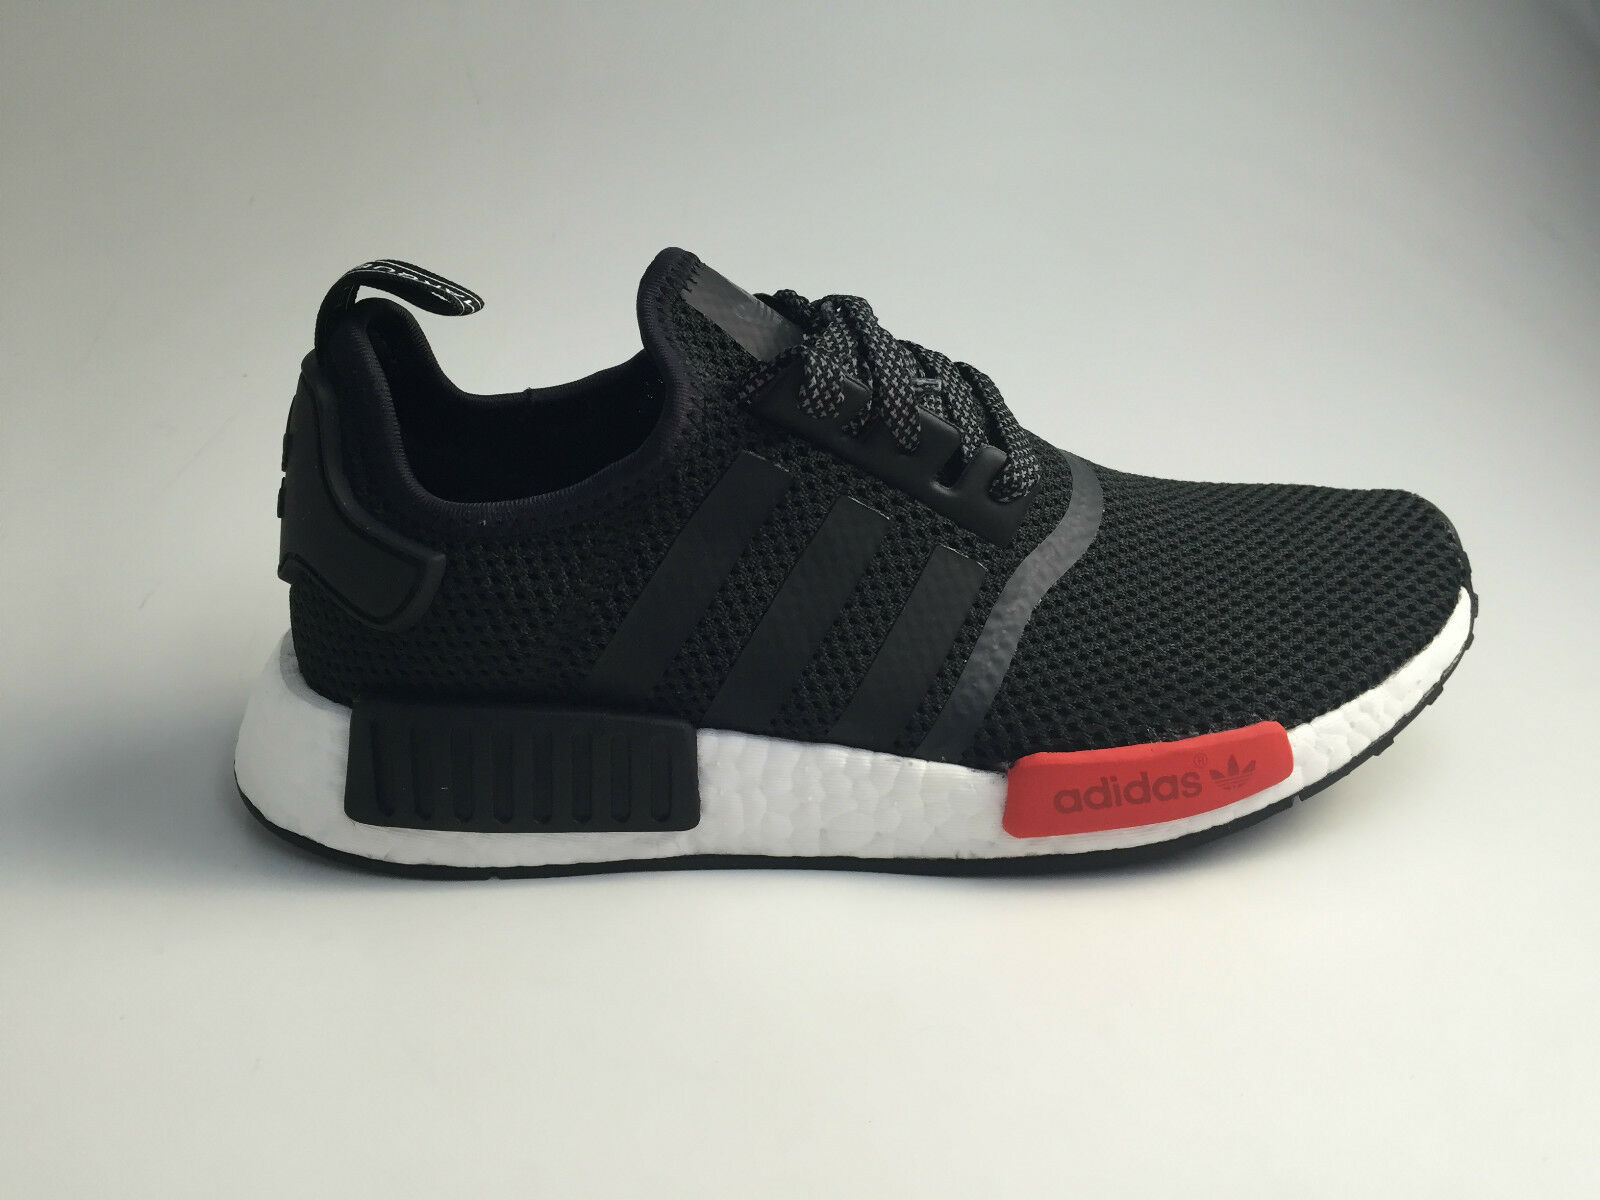 Adidas NMD R1 Foot Locker Exclusive 41 1/3 42 42 2/3 43 44 44 2/3 45 1/3